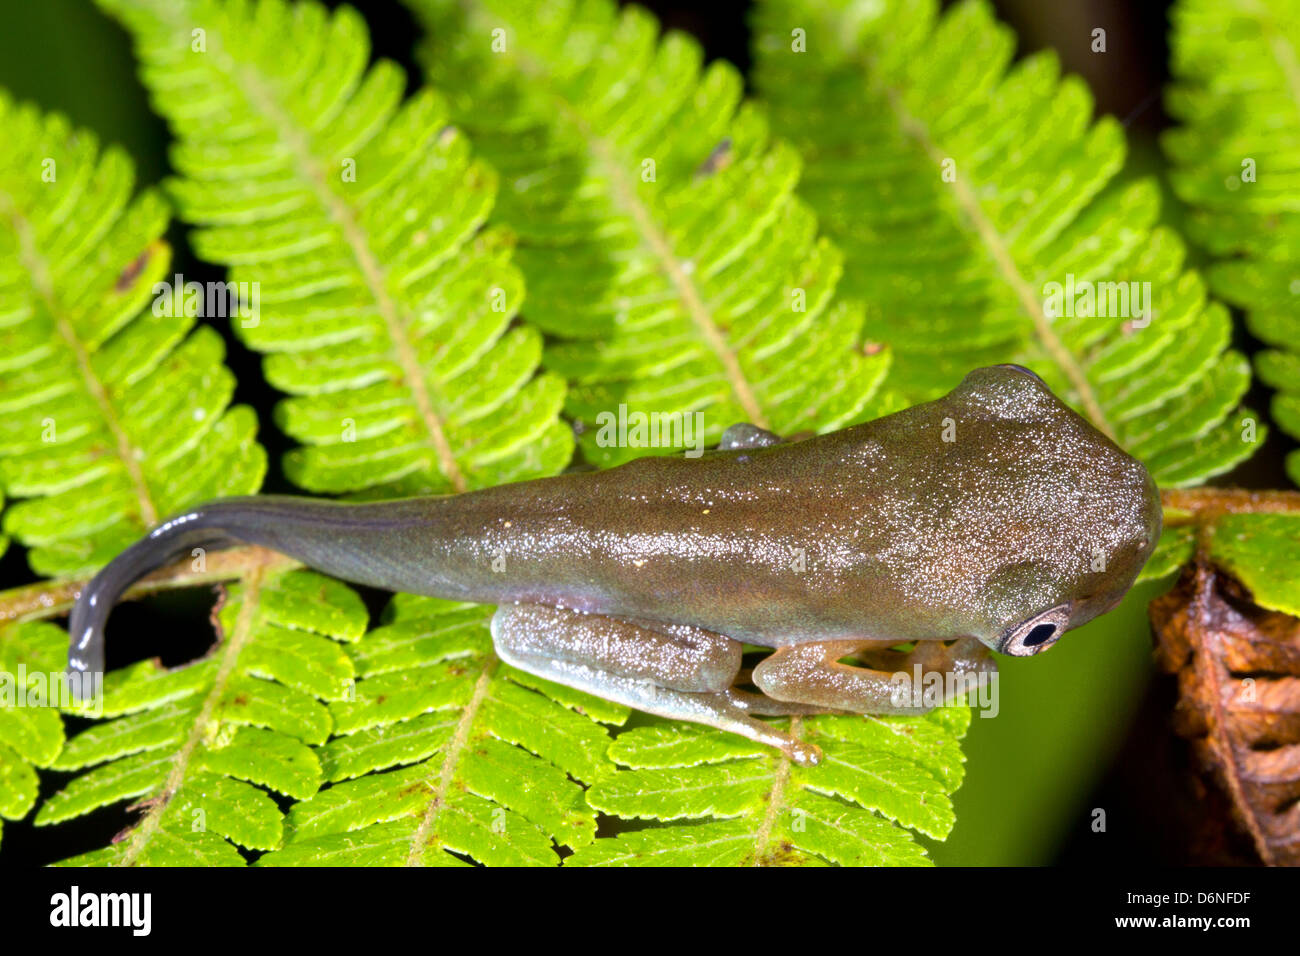 Amphibian metamorphosis - Tadpole changing into a frog. An amazonian species from Ecuador - Stock Image